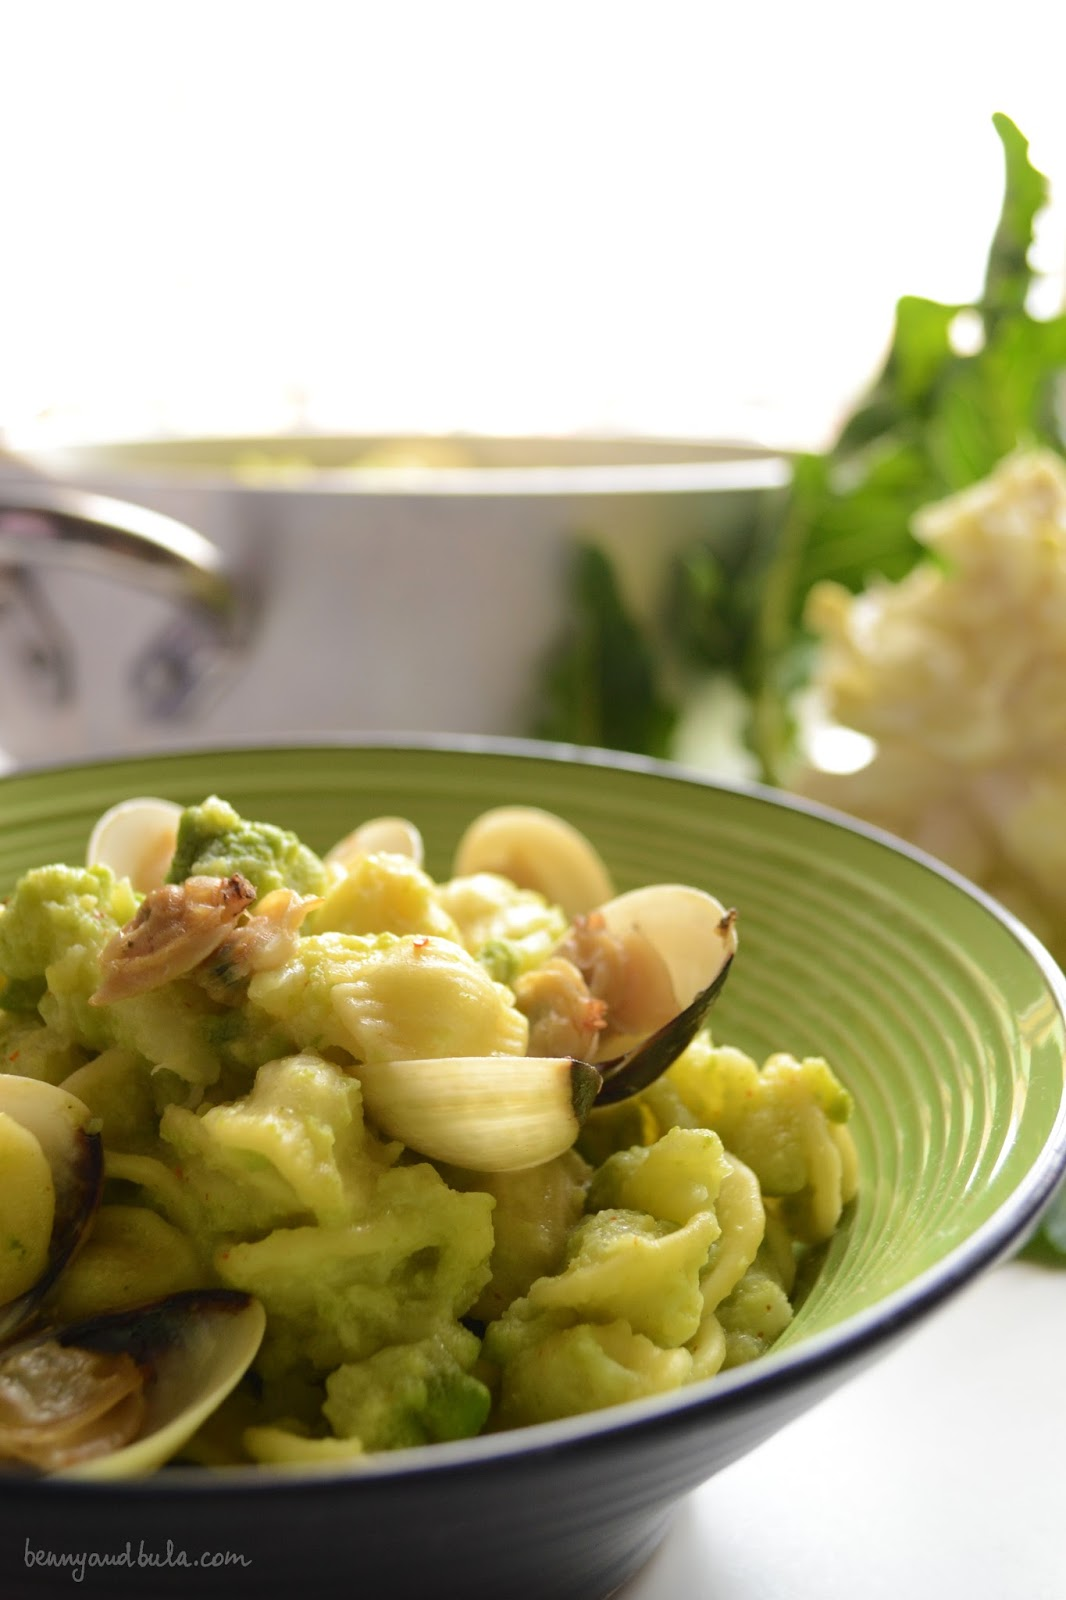 ricetta orecchiette broccolo romanesco e vongole/ roman broccolo and clams pasta recipe